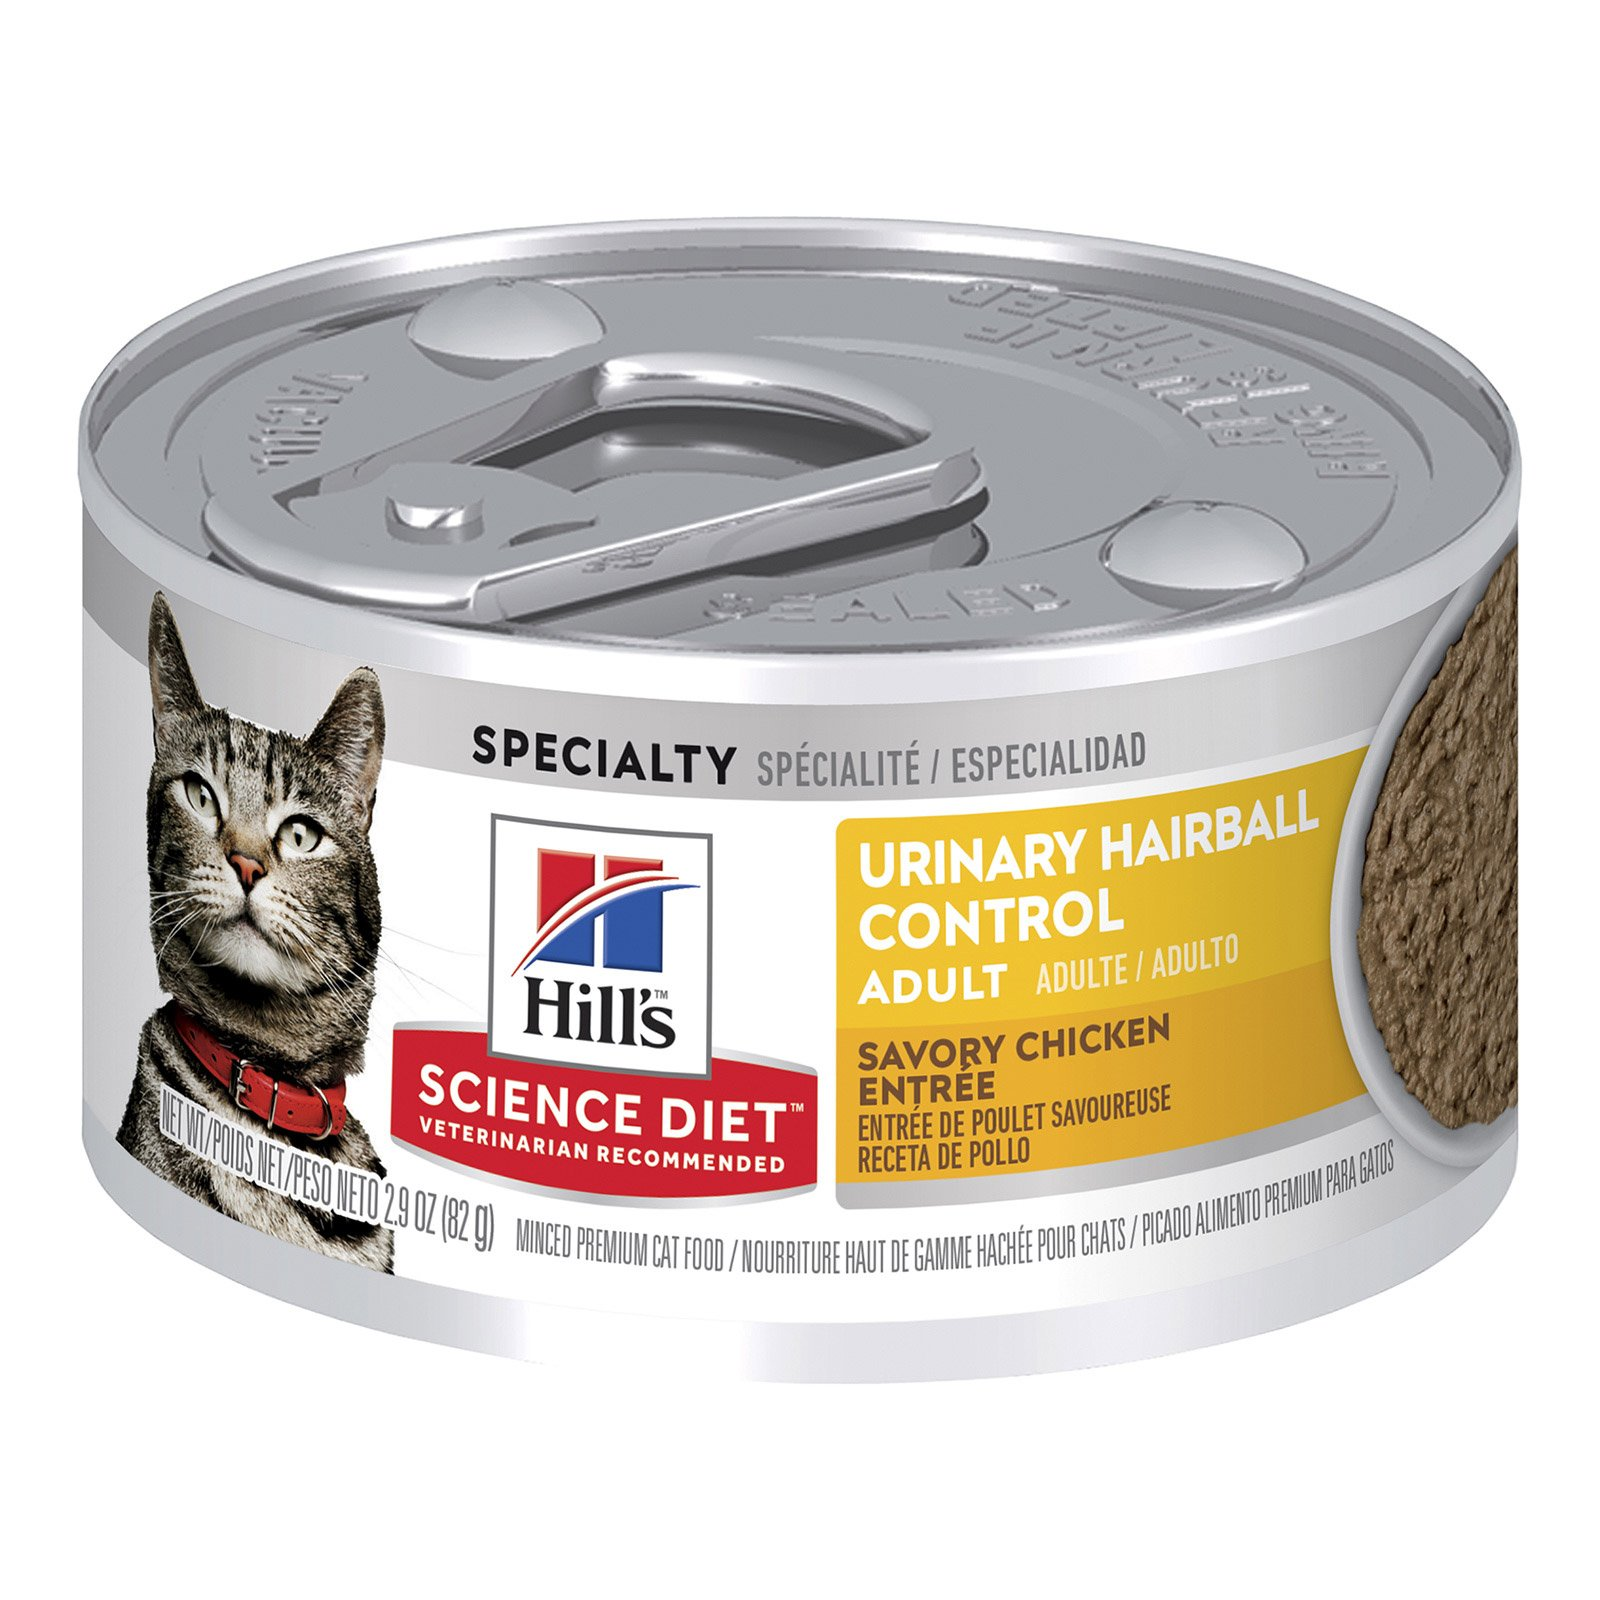 Hill's Science Diet Adult Urinary Hairball Control Chicken Entree Canned Cat Food